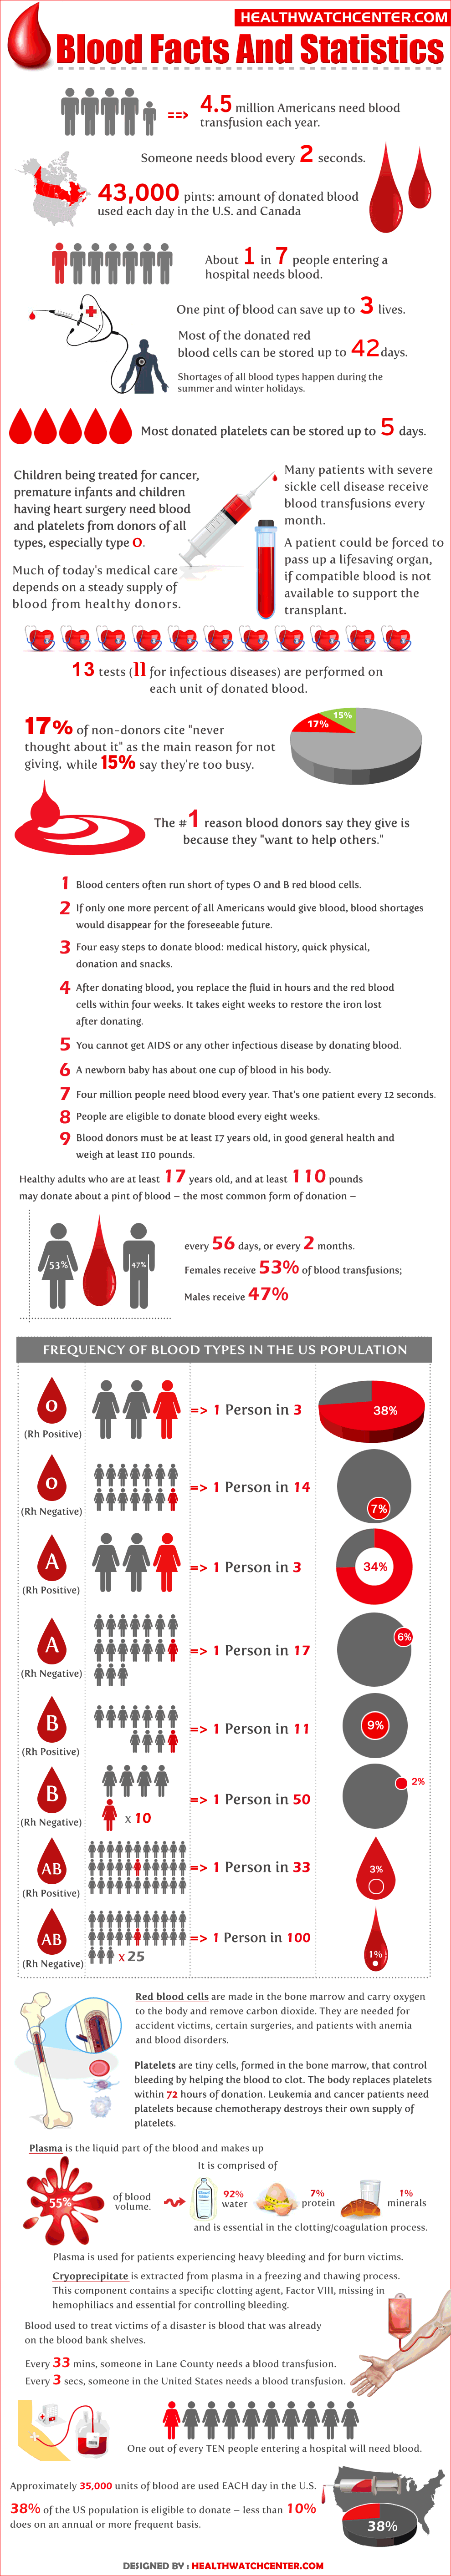 Blood Facts and Statistics